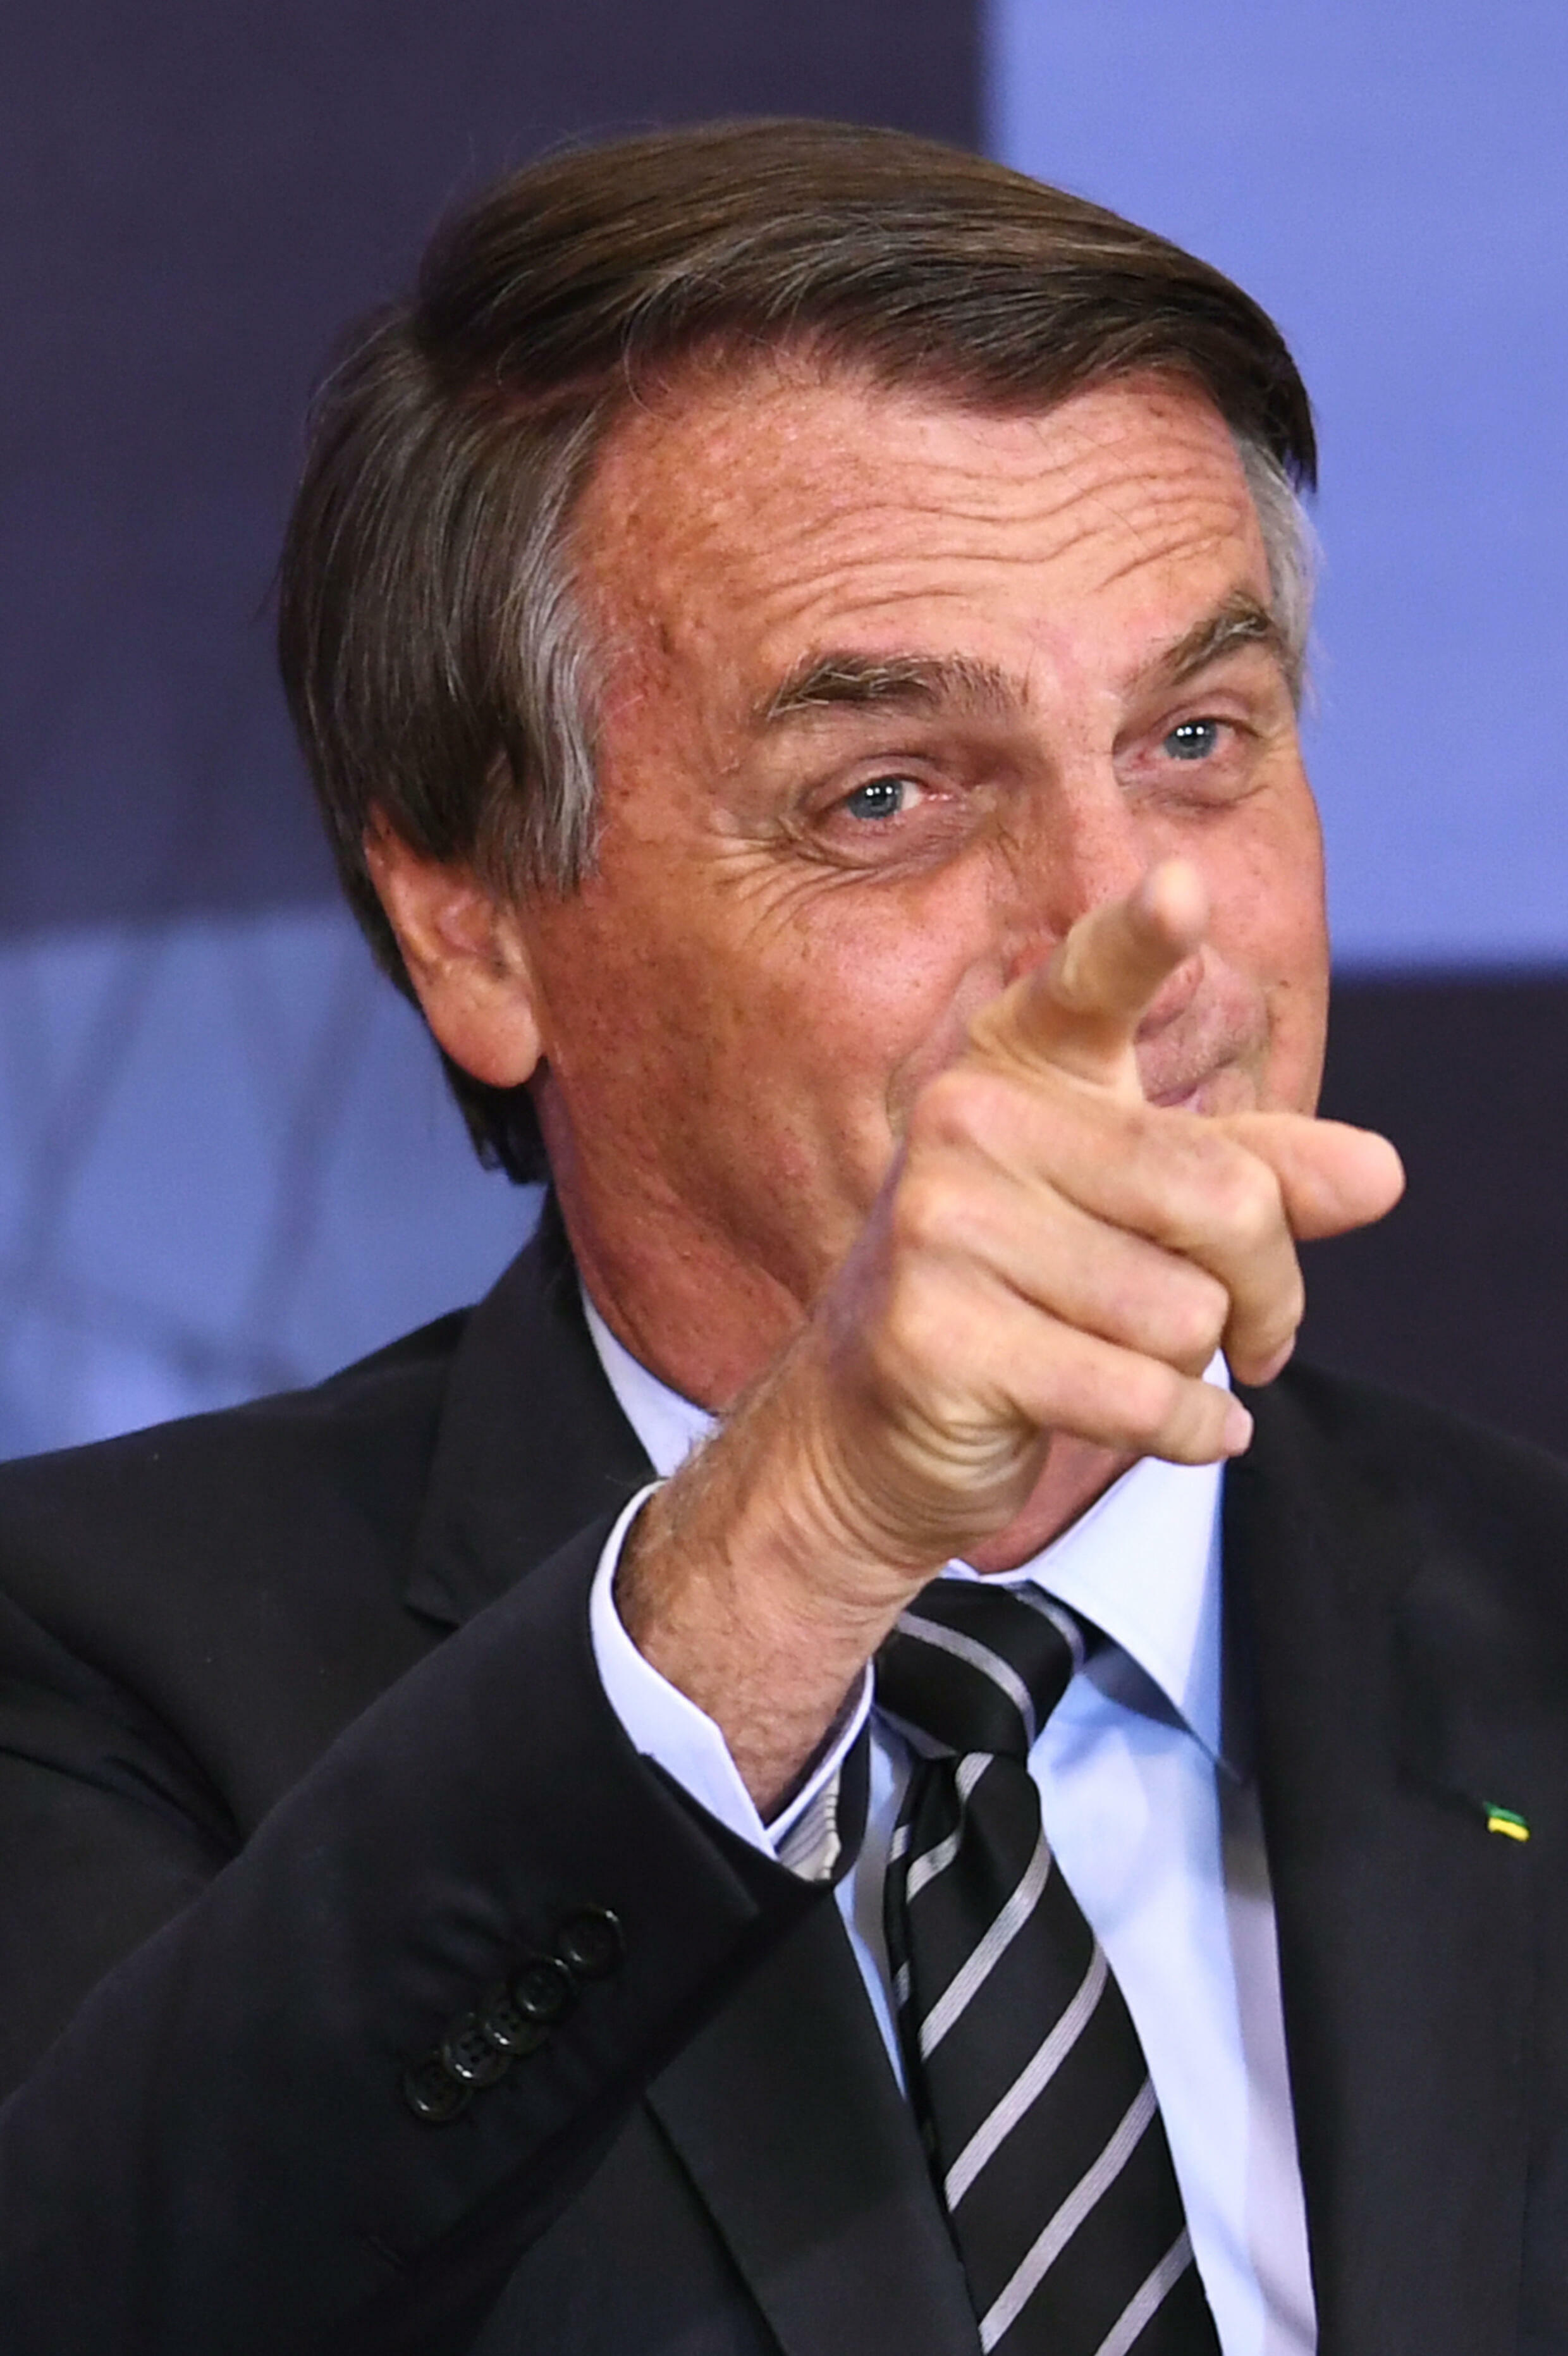 Brazilian President Jair Bolsonaro will travel to the UN General Assembly despite not being vaccinated